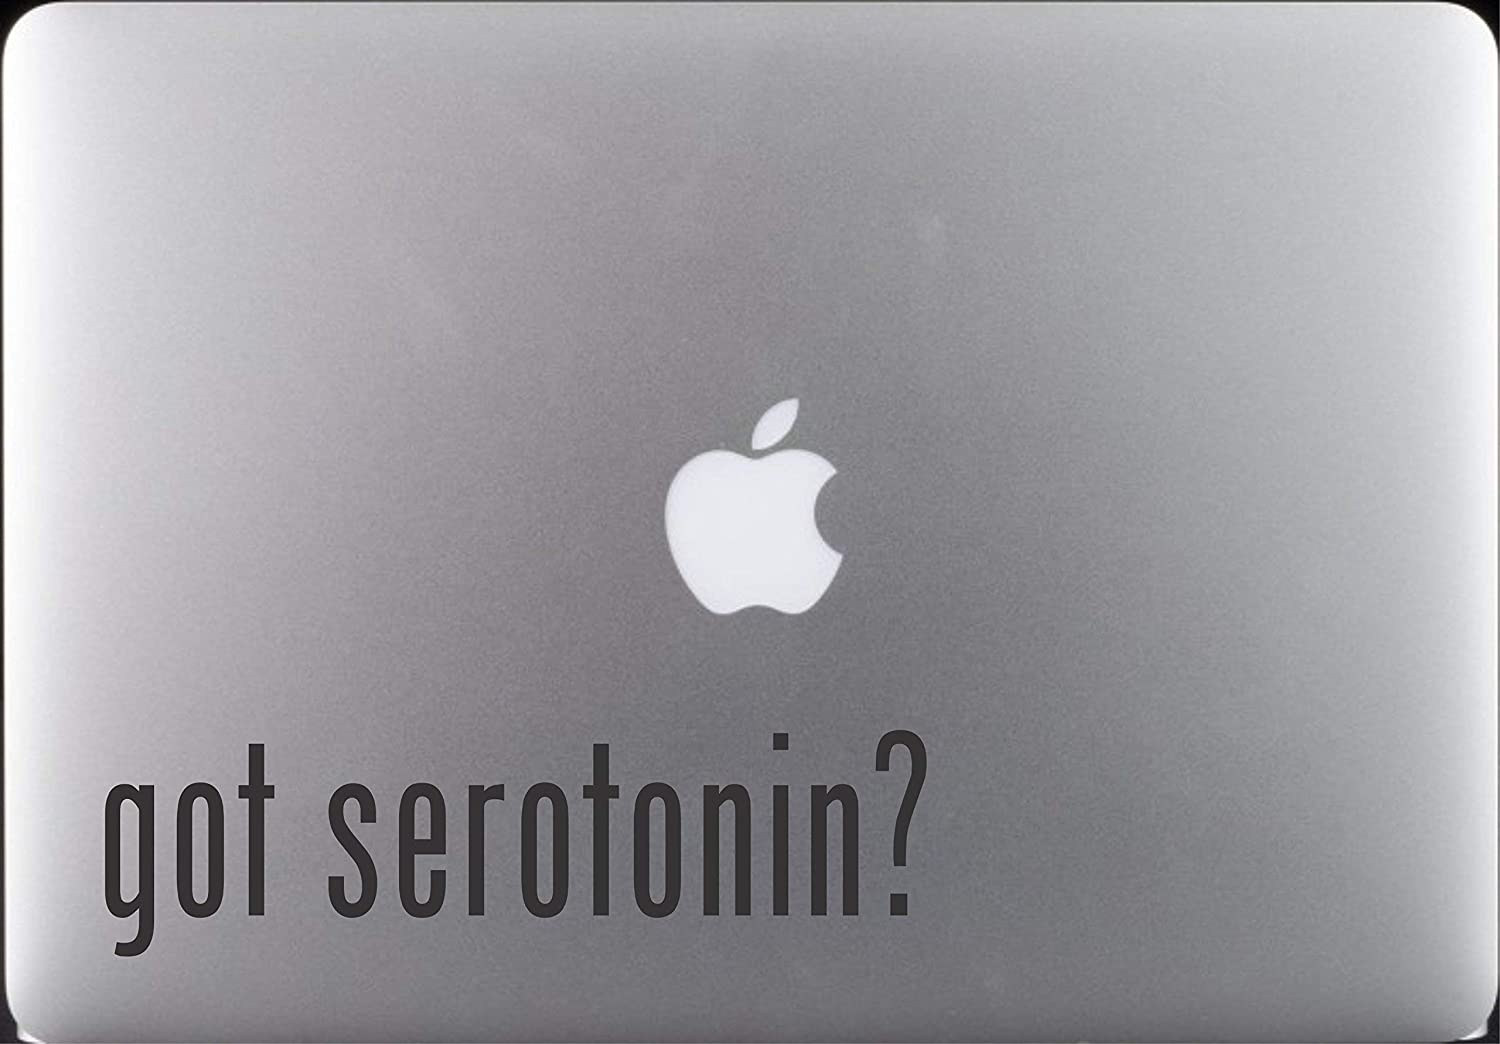 "Got Serotonin ? Vinyl Decal Sticker for Macbook Pro 11"" 13"" 15"" Apple Laptop Scientific Science Decor Decoration, Sticker: 7 X 2 Inch"